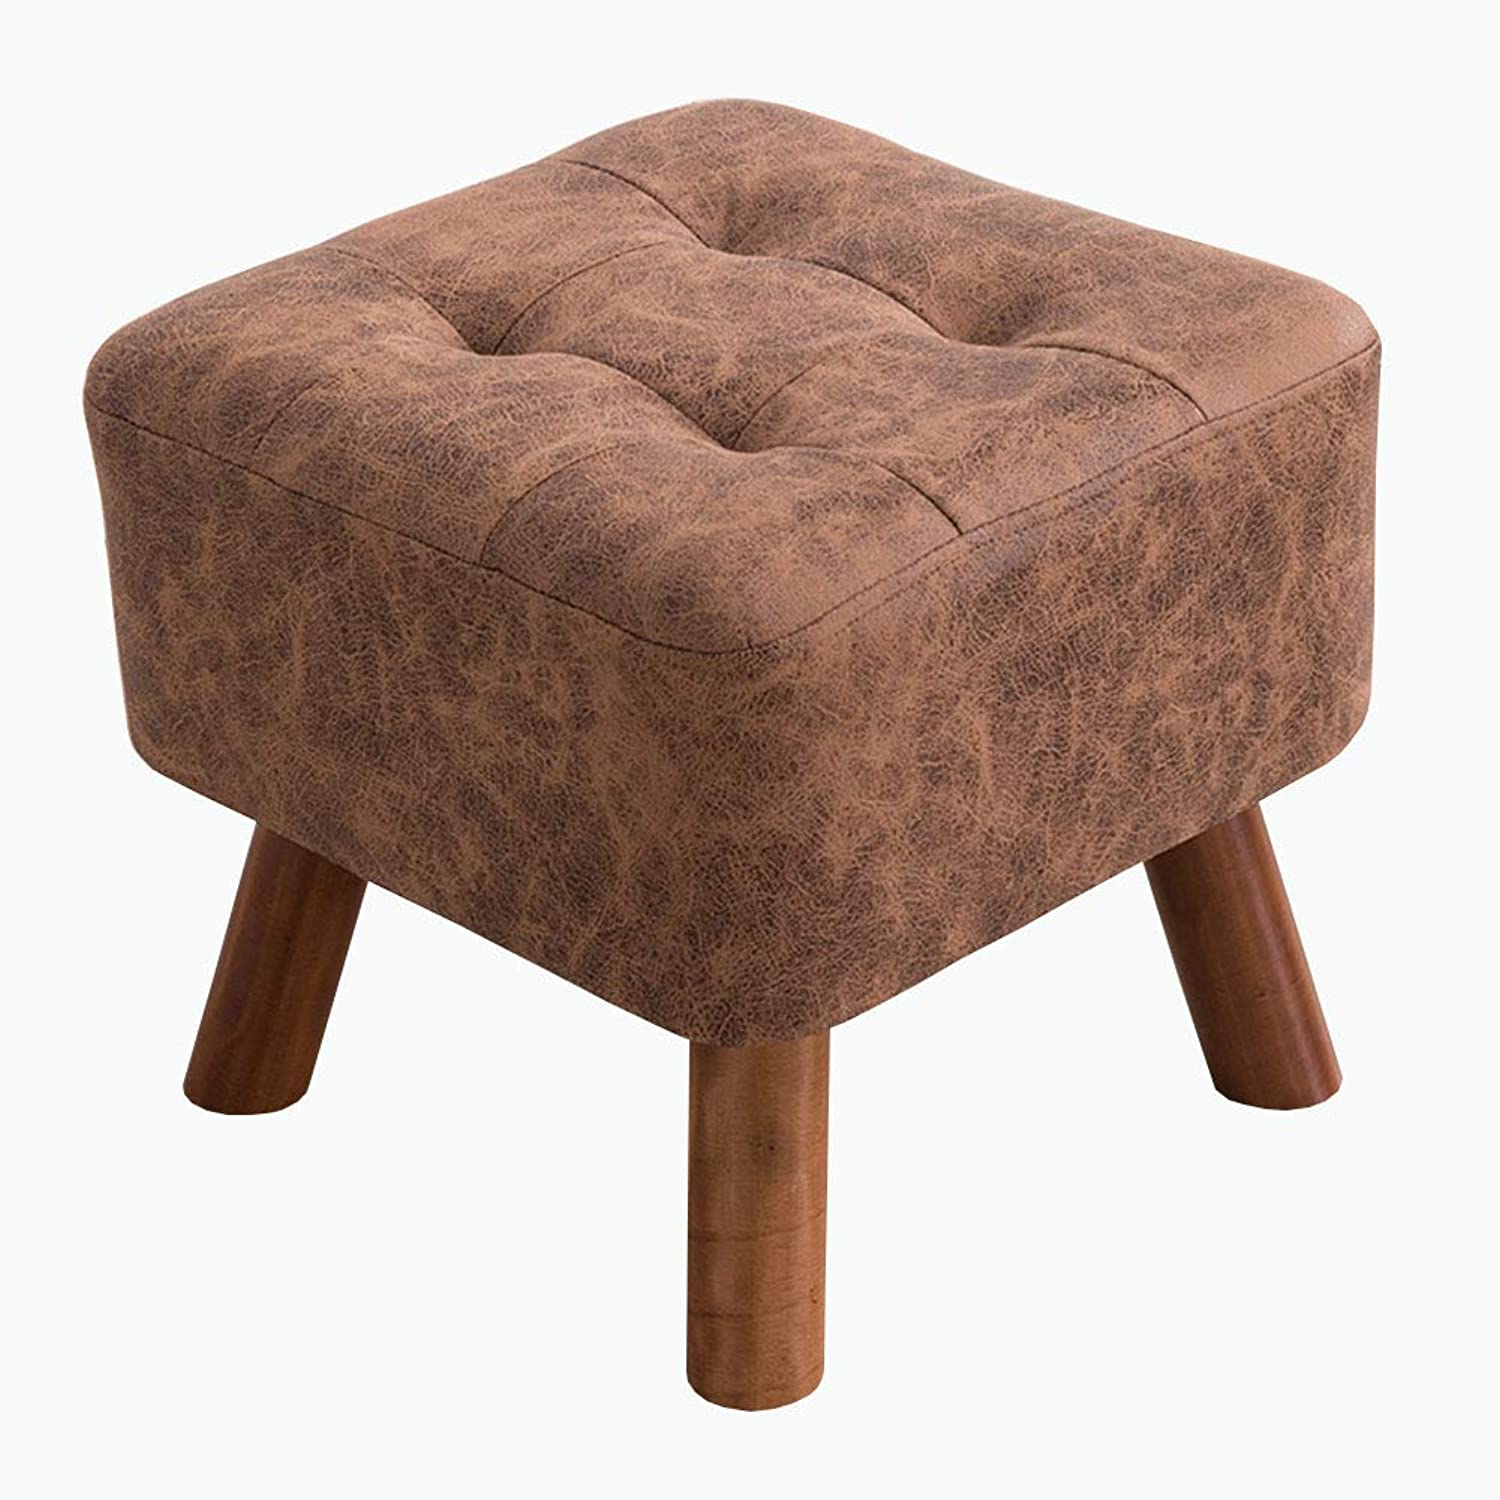 ZHAOYONGLI Stool Beautiful Fashion Stool Creative Sofa Stool Solid Wood shoes Bench Seat Dressing Table Stool Creative Solid Durable Long Lasting (color   Brown, Size   40  32cm)